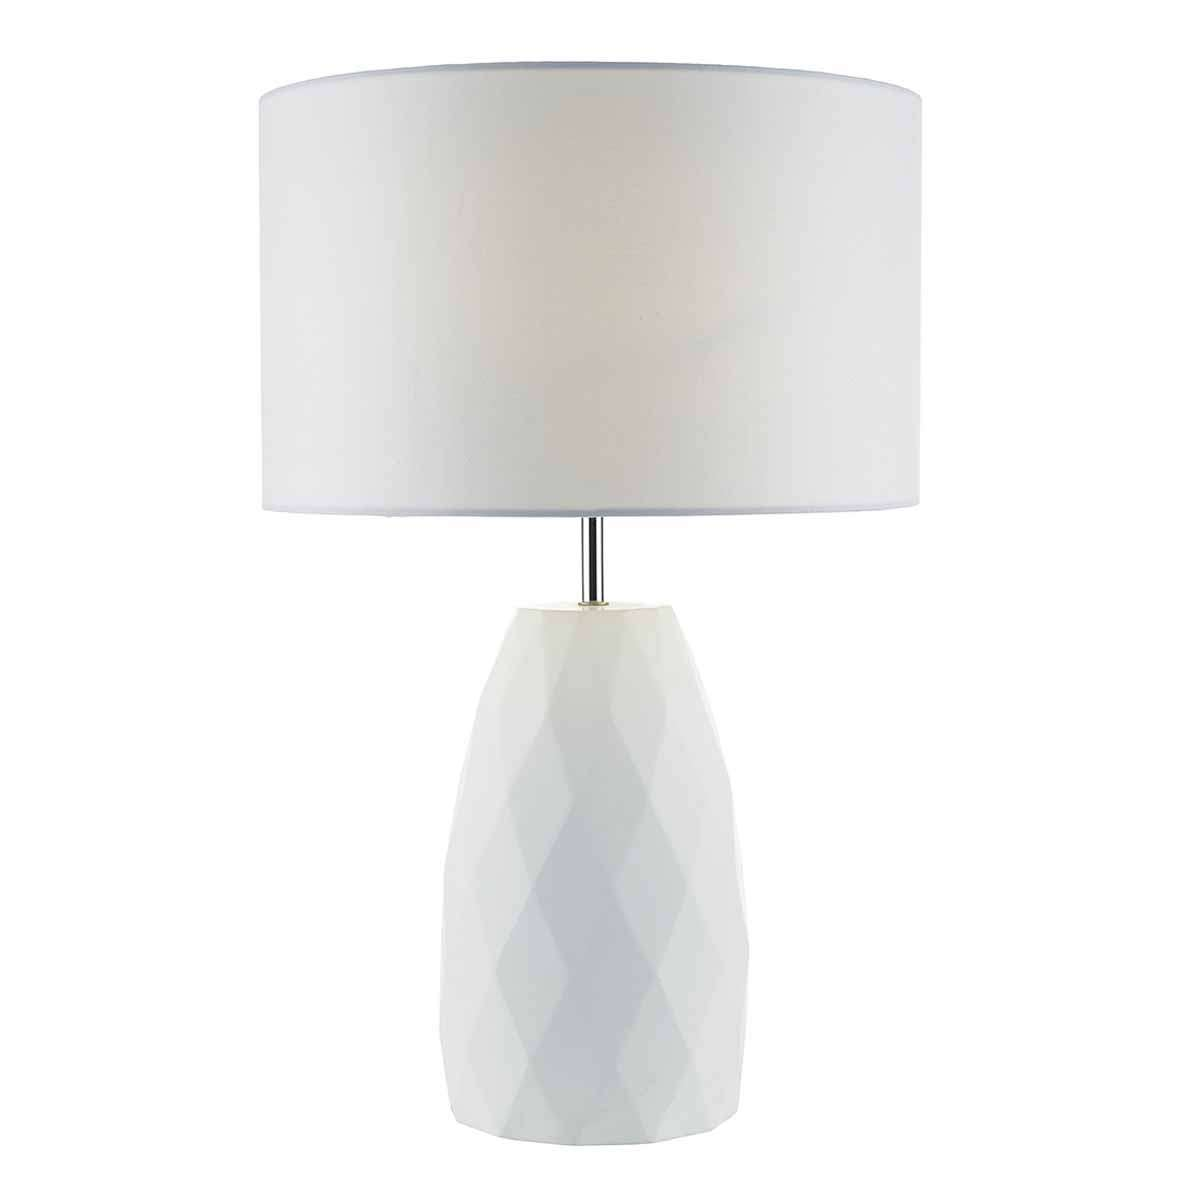 Ciara Table Lamp White Base c/w White Linen Shade